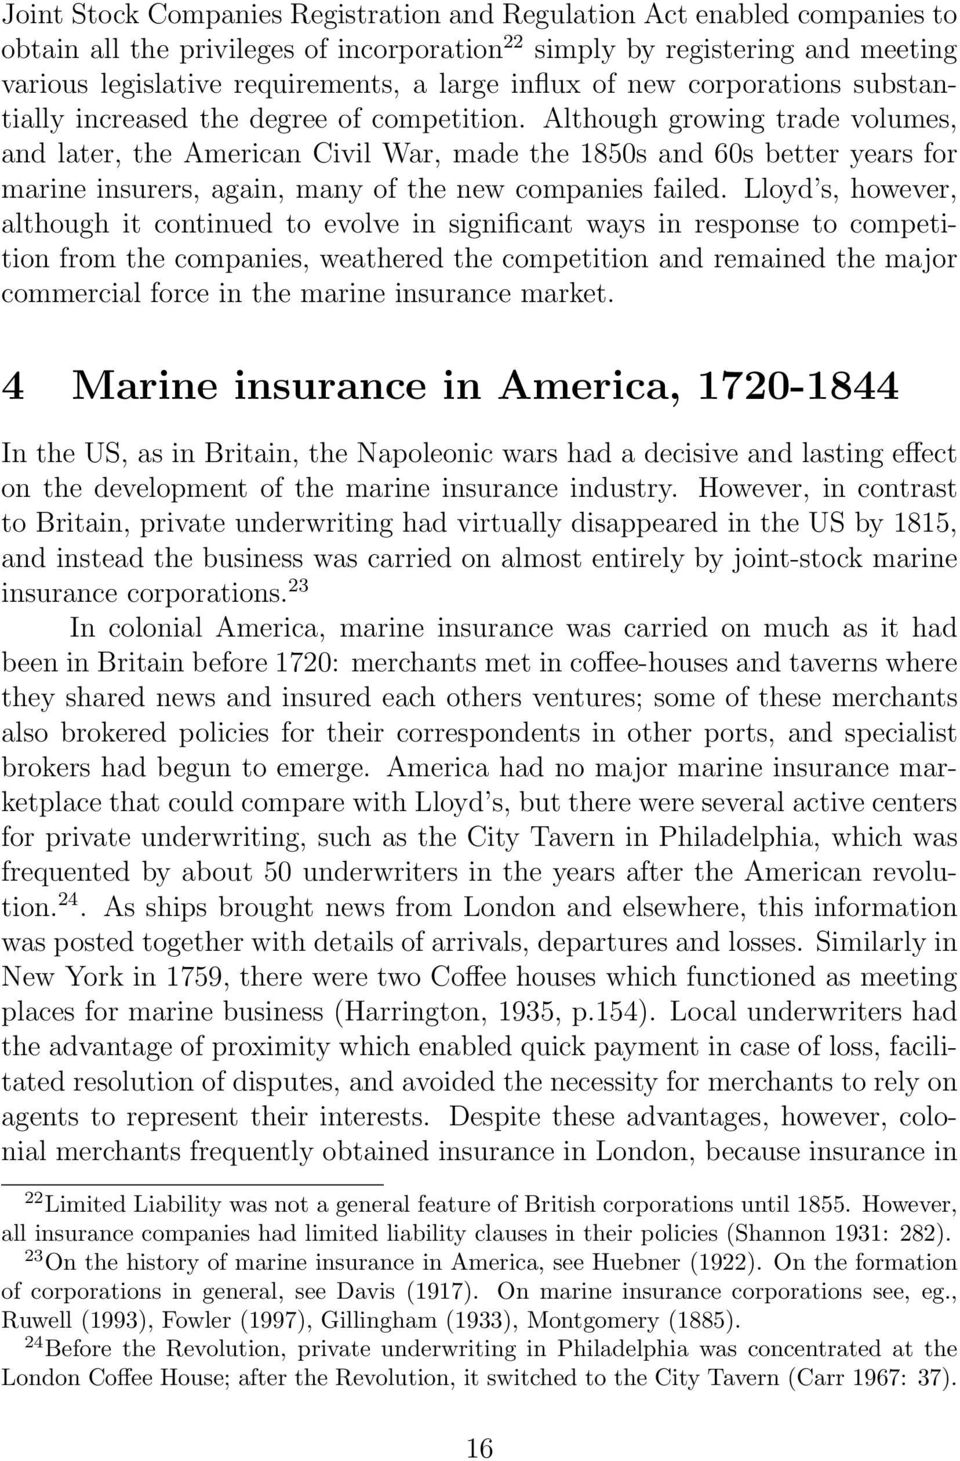 Although growing trade volumes, and later, the American Civil War, made the 1850s and 60s better years for marine insurers, again, many of the new companies failed.